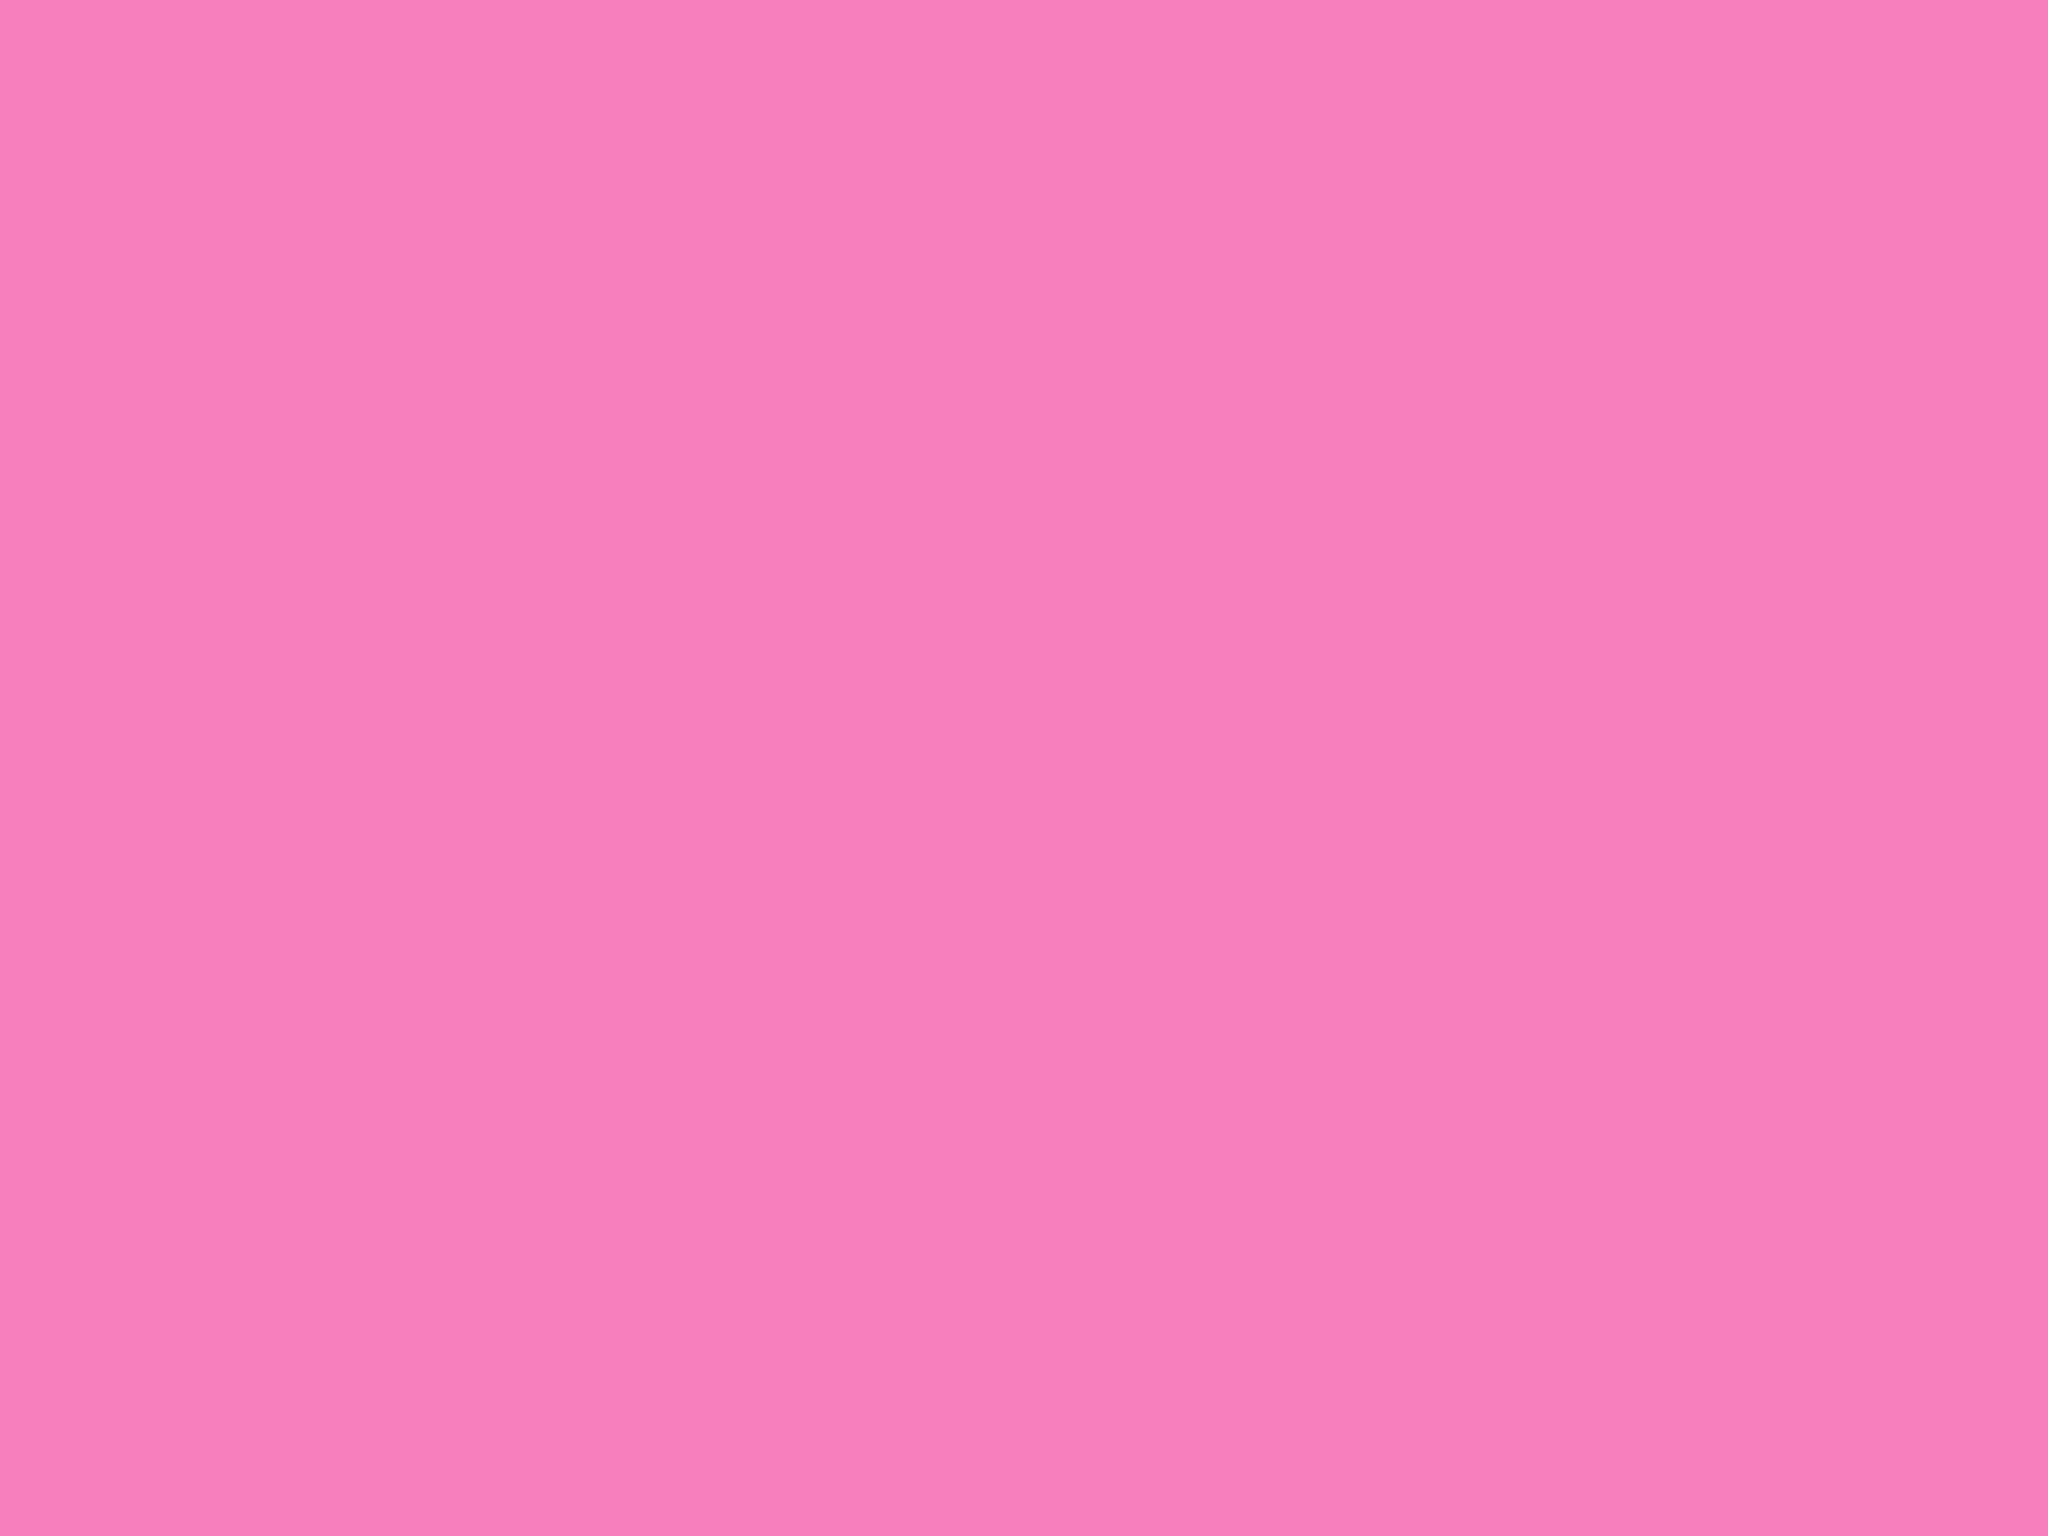 2048x1536 Persian Pink Solid Color Background